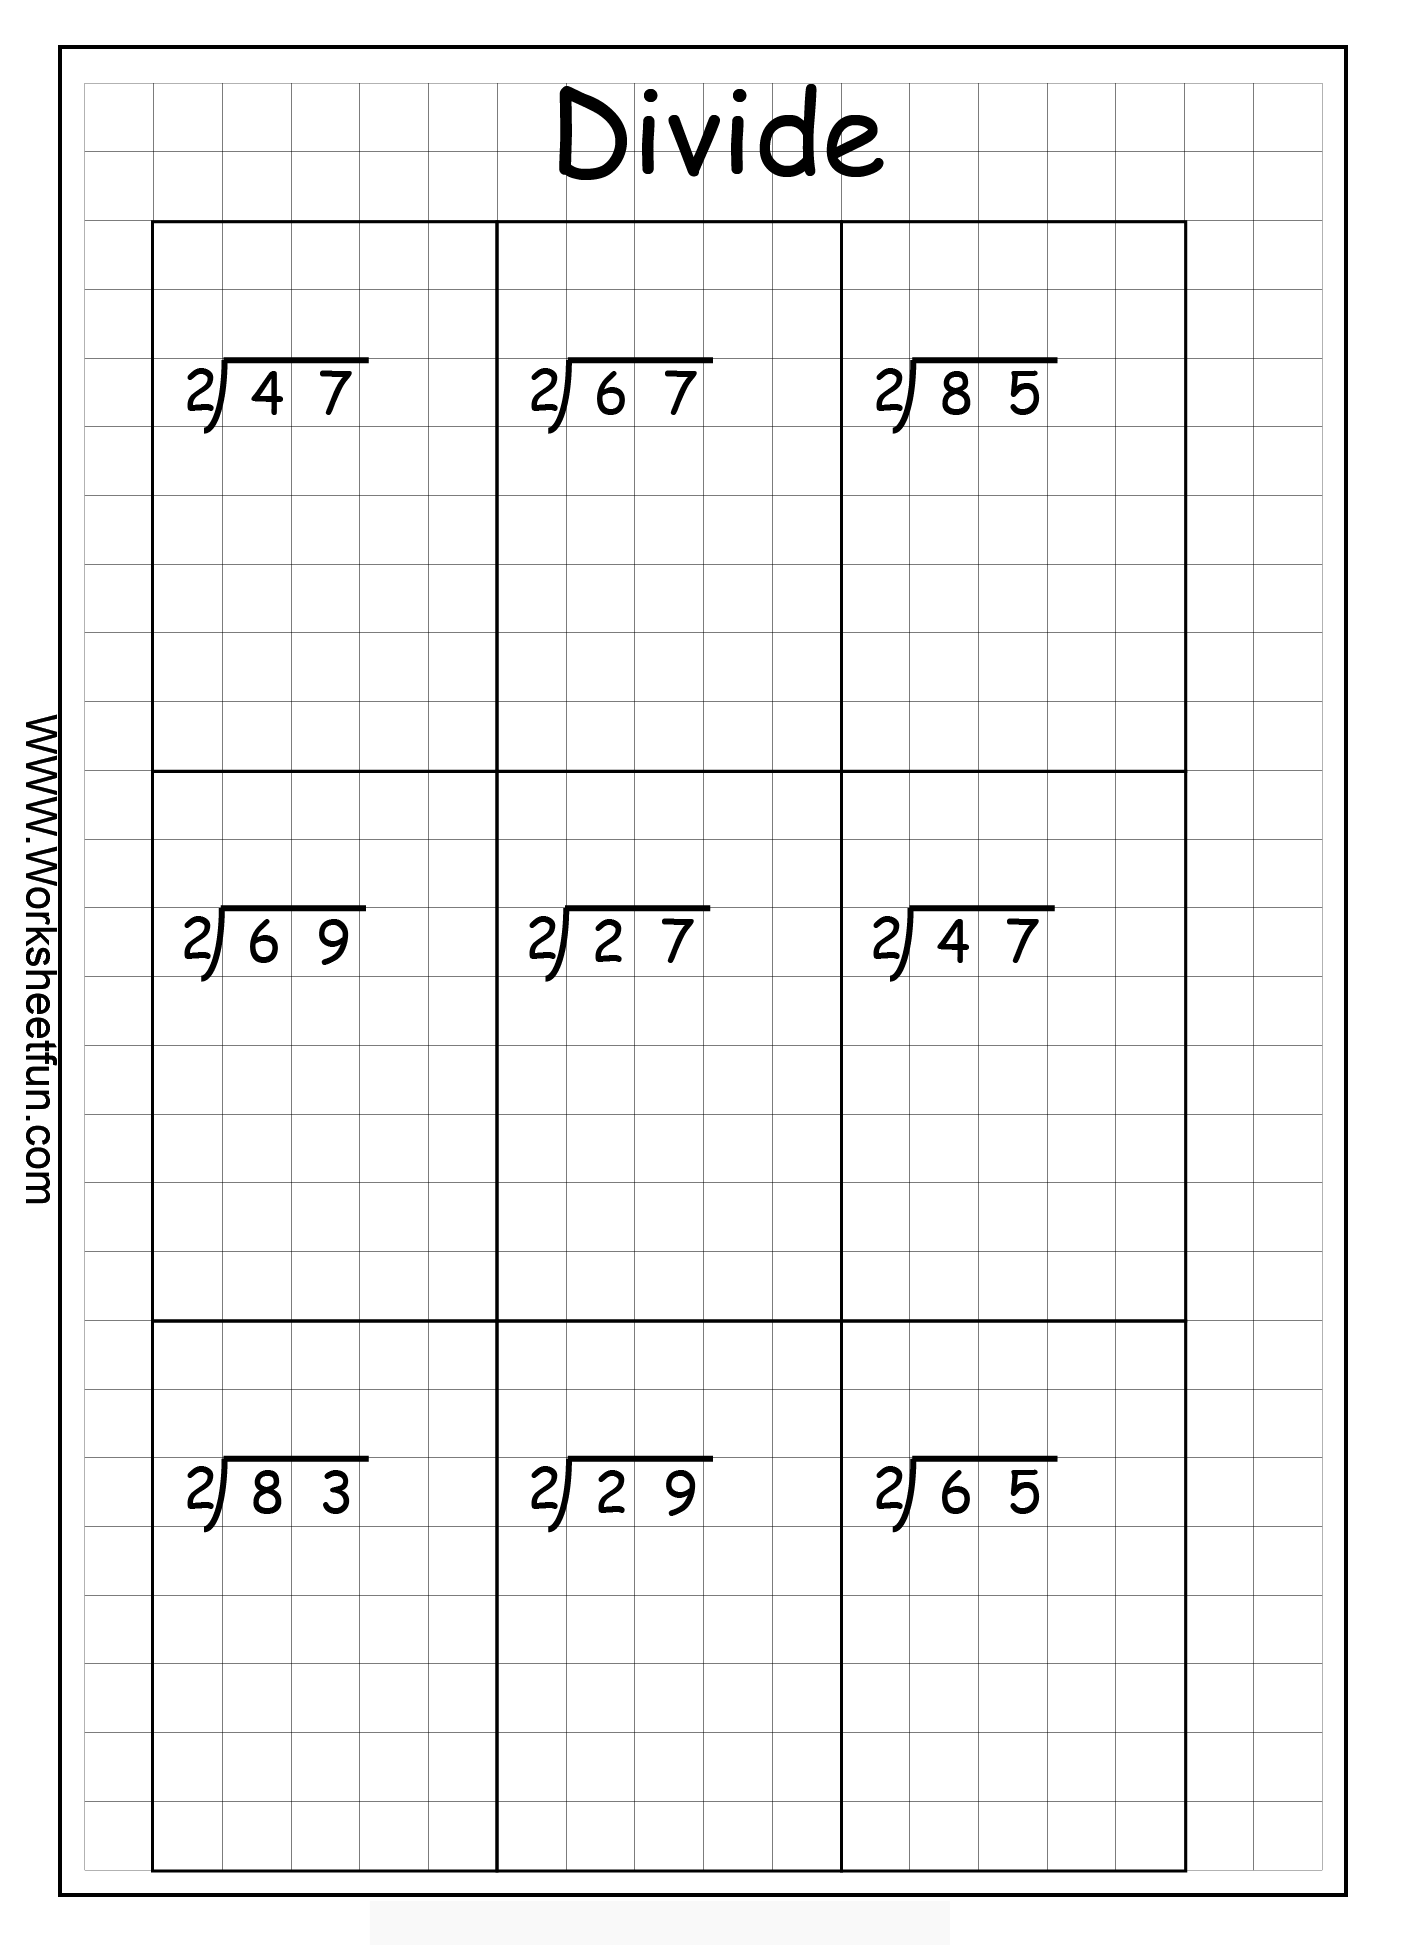 small resolution of Pin by www.worksheetfun .com on Printable Worksheets   Division worksheets